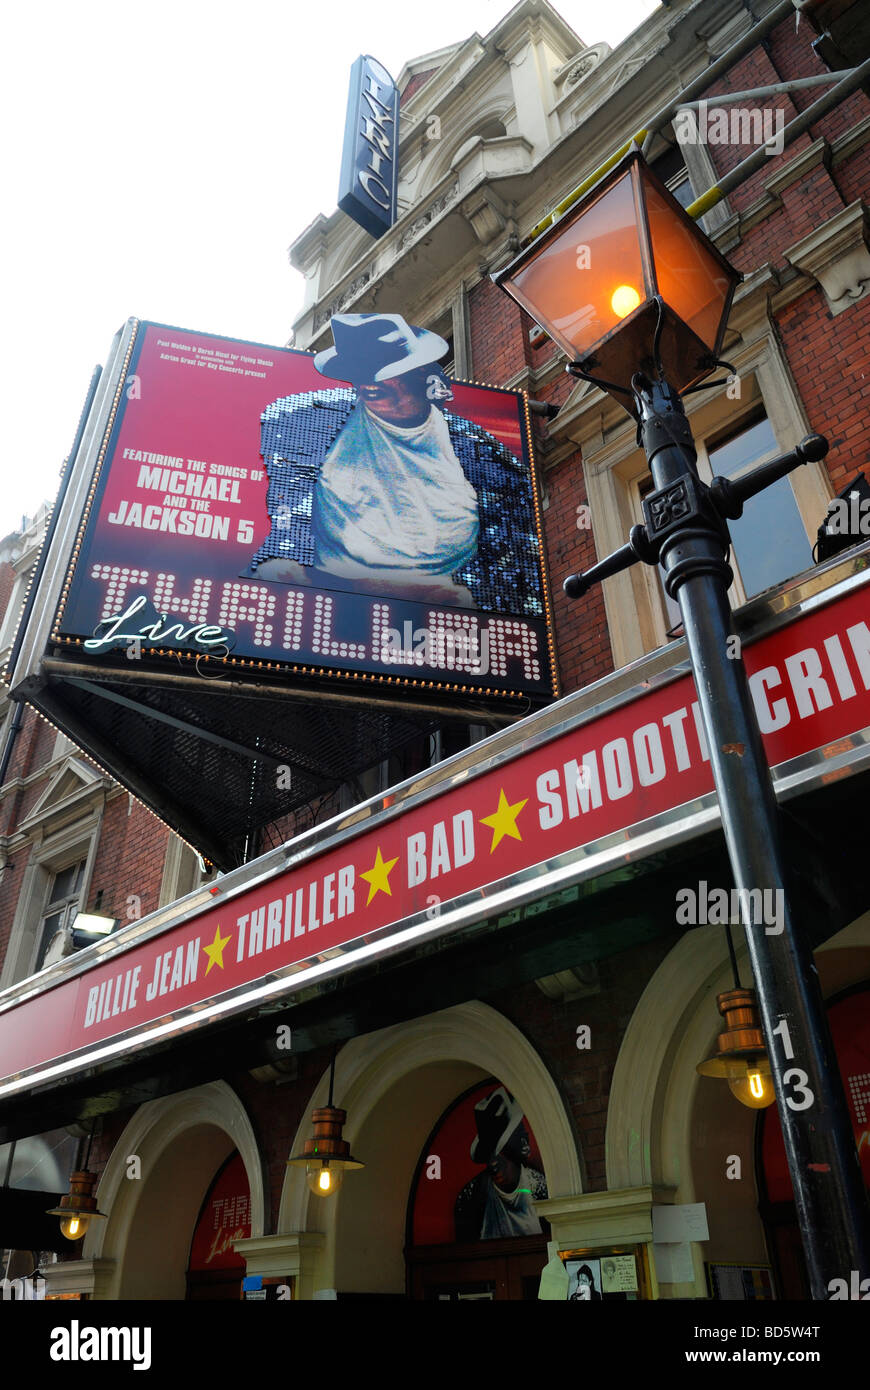 Thriller Live Show in London's Westend, Featuring the Songs of Michael Jackson, Lyric Theatre, London, Britain - Stock Image